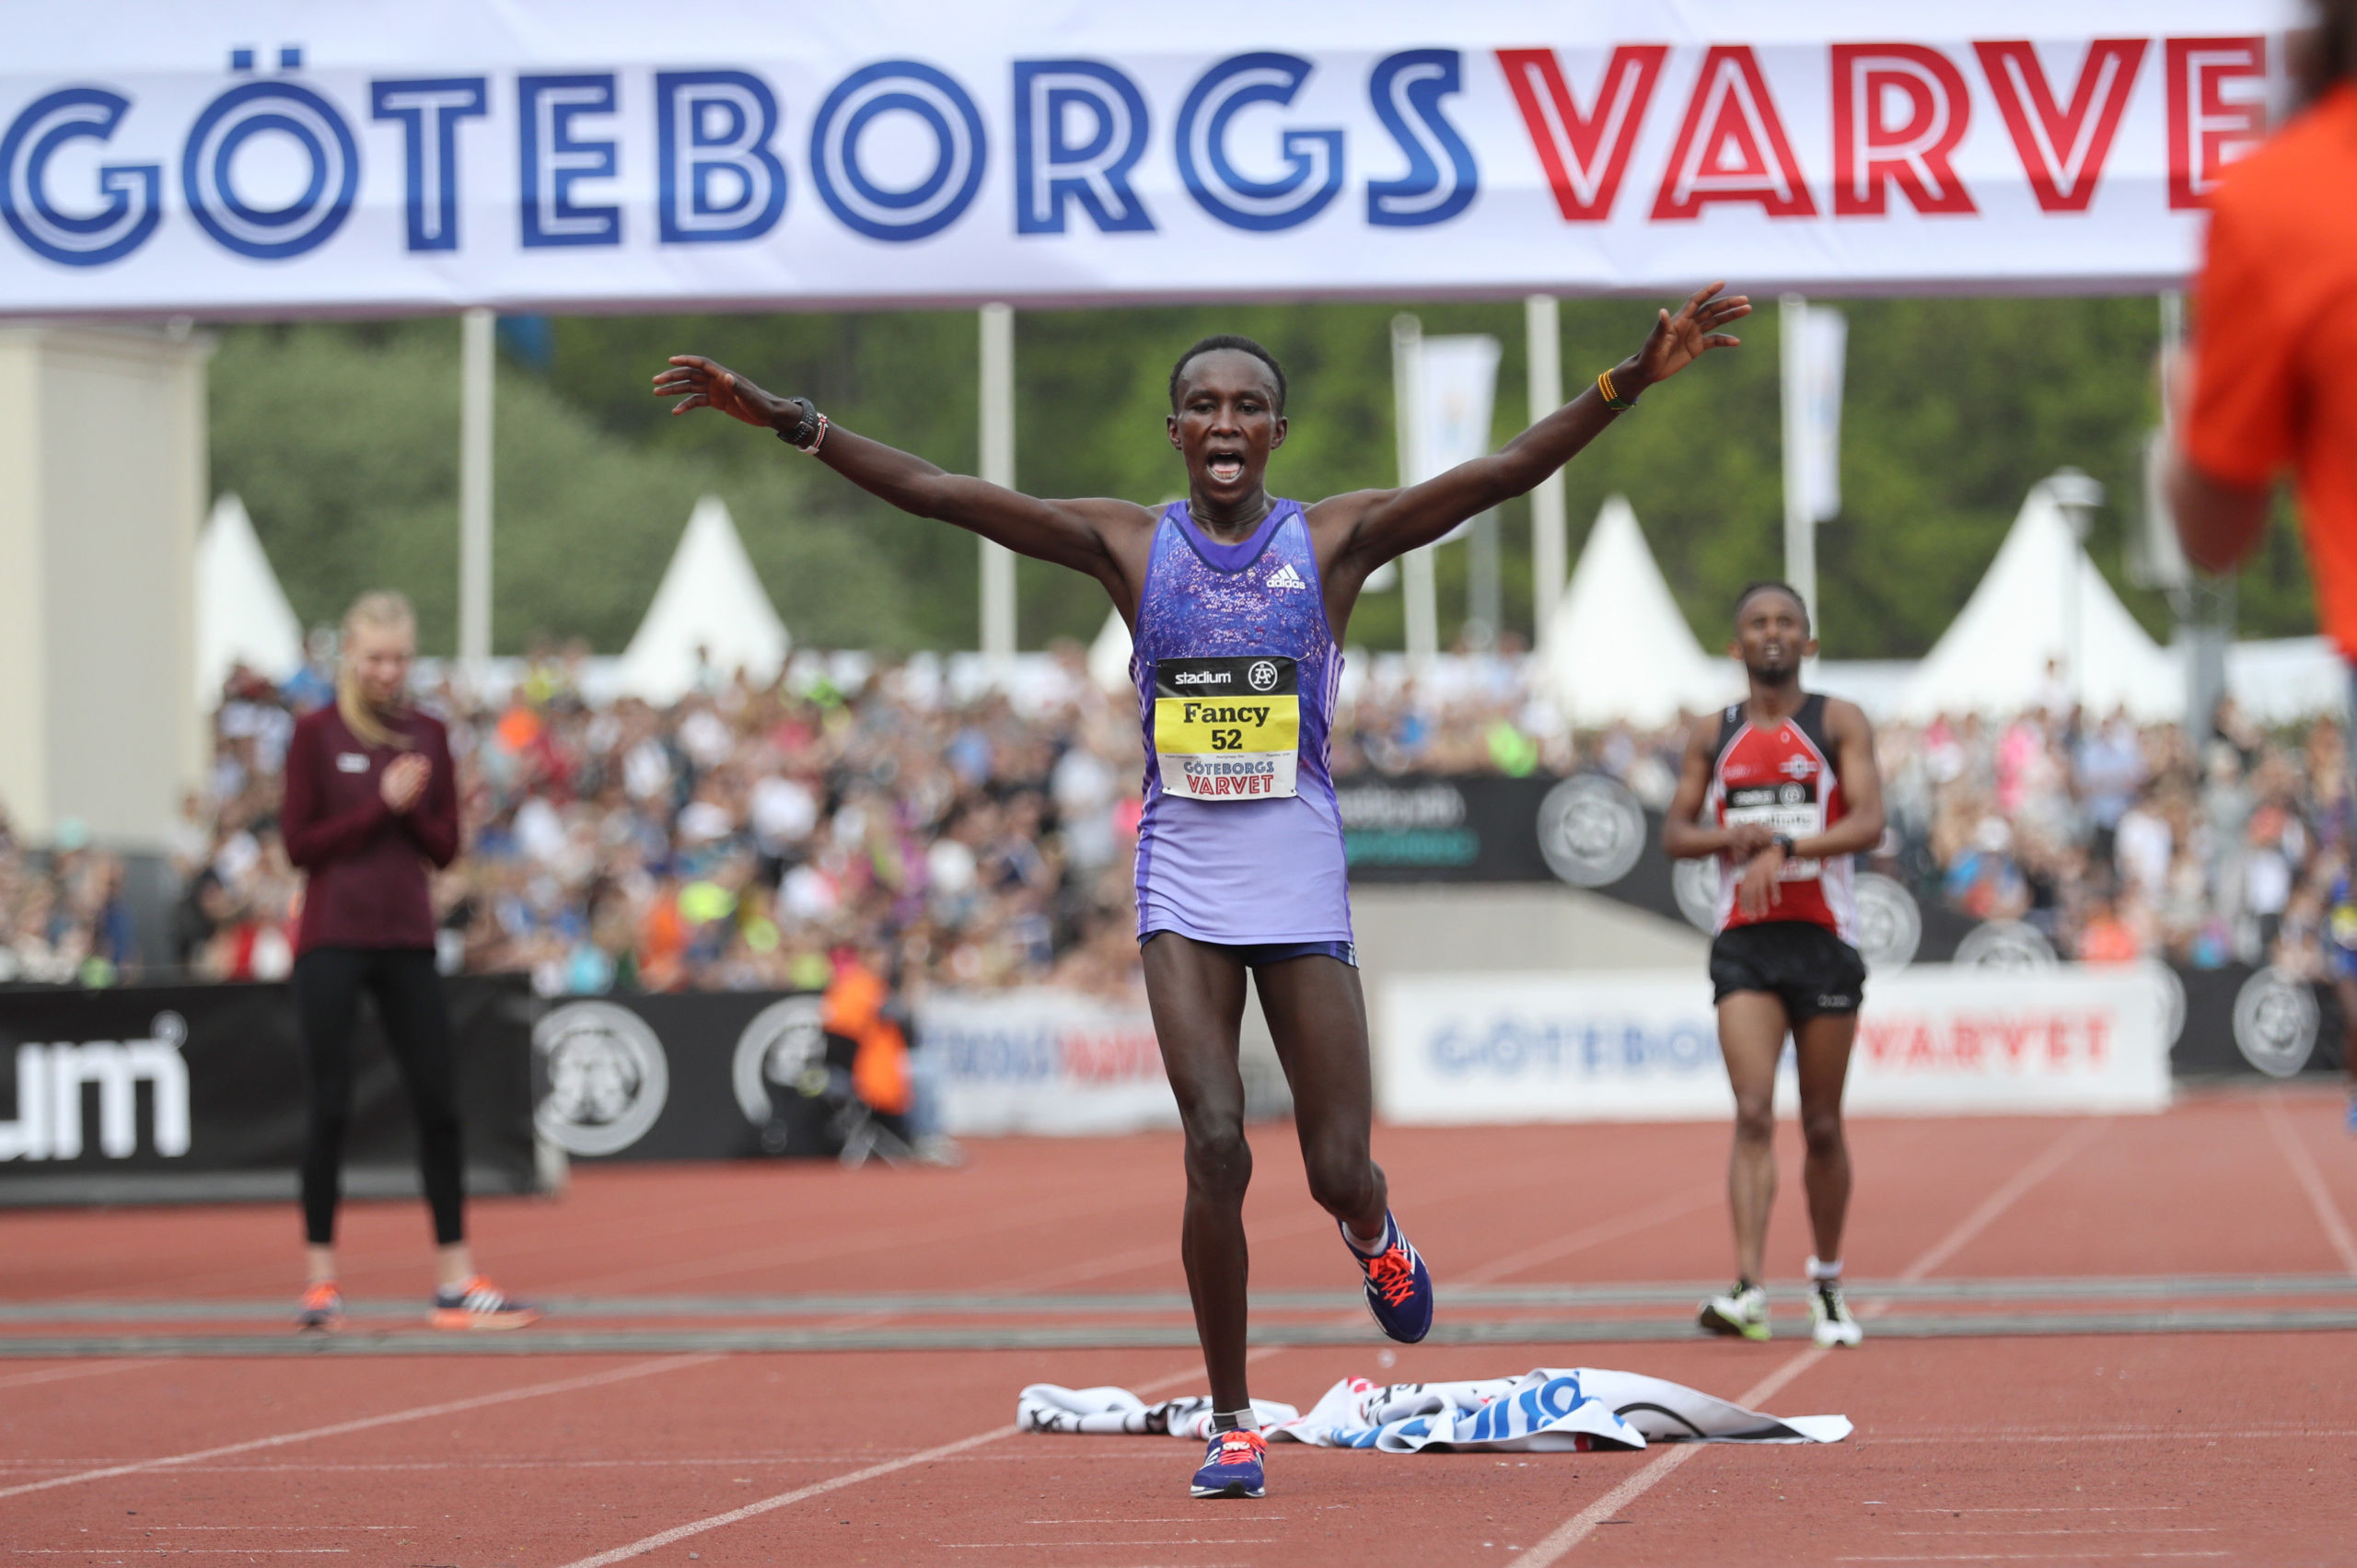 Kenya's Fancy Chemutai wants the World Half Marathon Championships Title